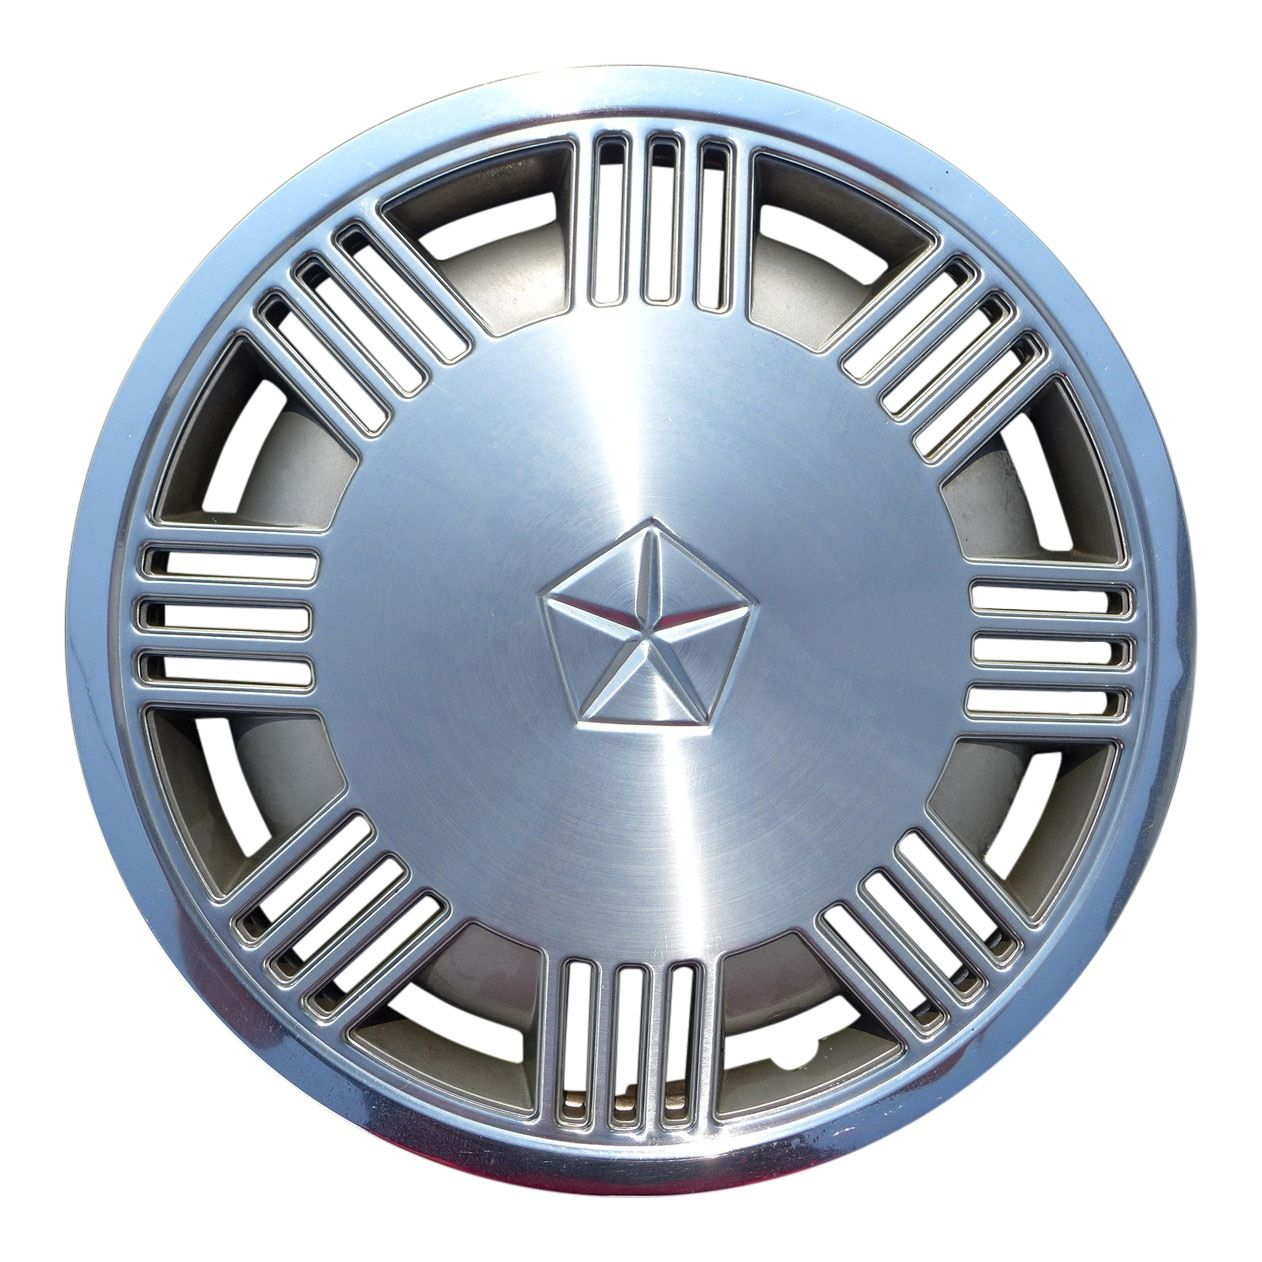 1988 1989 1990 1991 1992 1993 Dodge Dynasty Plymouth Acclaim Hubcap Wheel Cover 14 466 Hubcaps Unlimited Wheelcovers Com Hubc Wheel Cover Plymouth Dodge